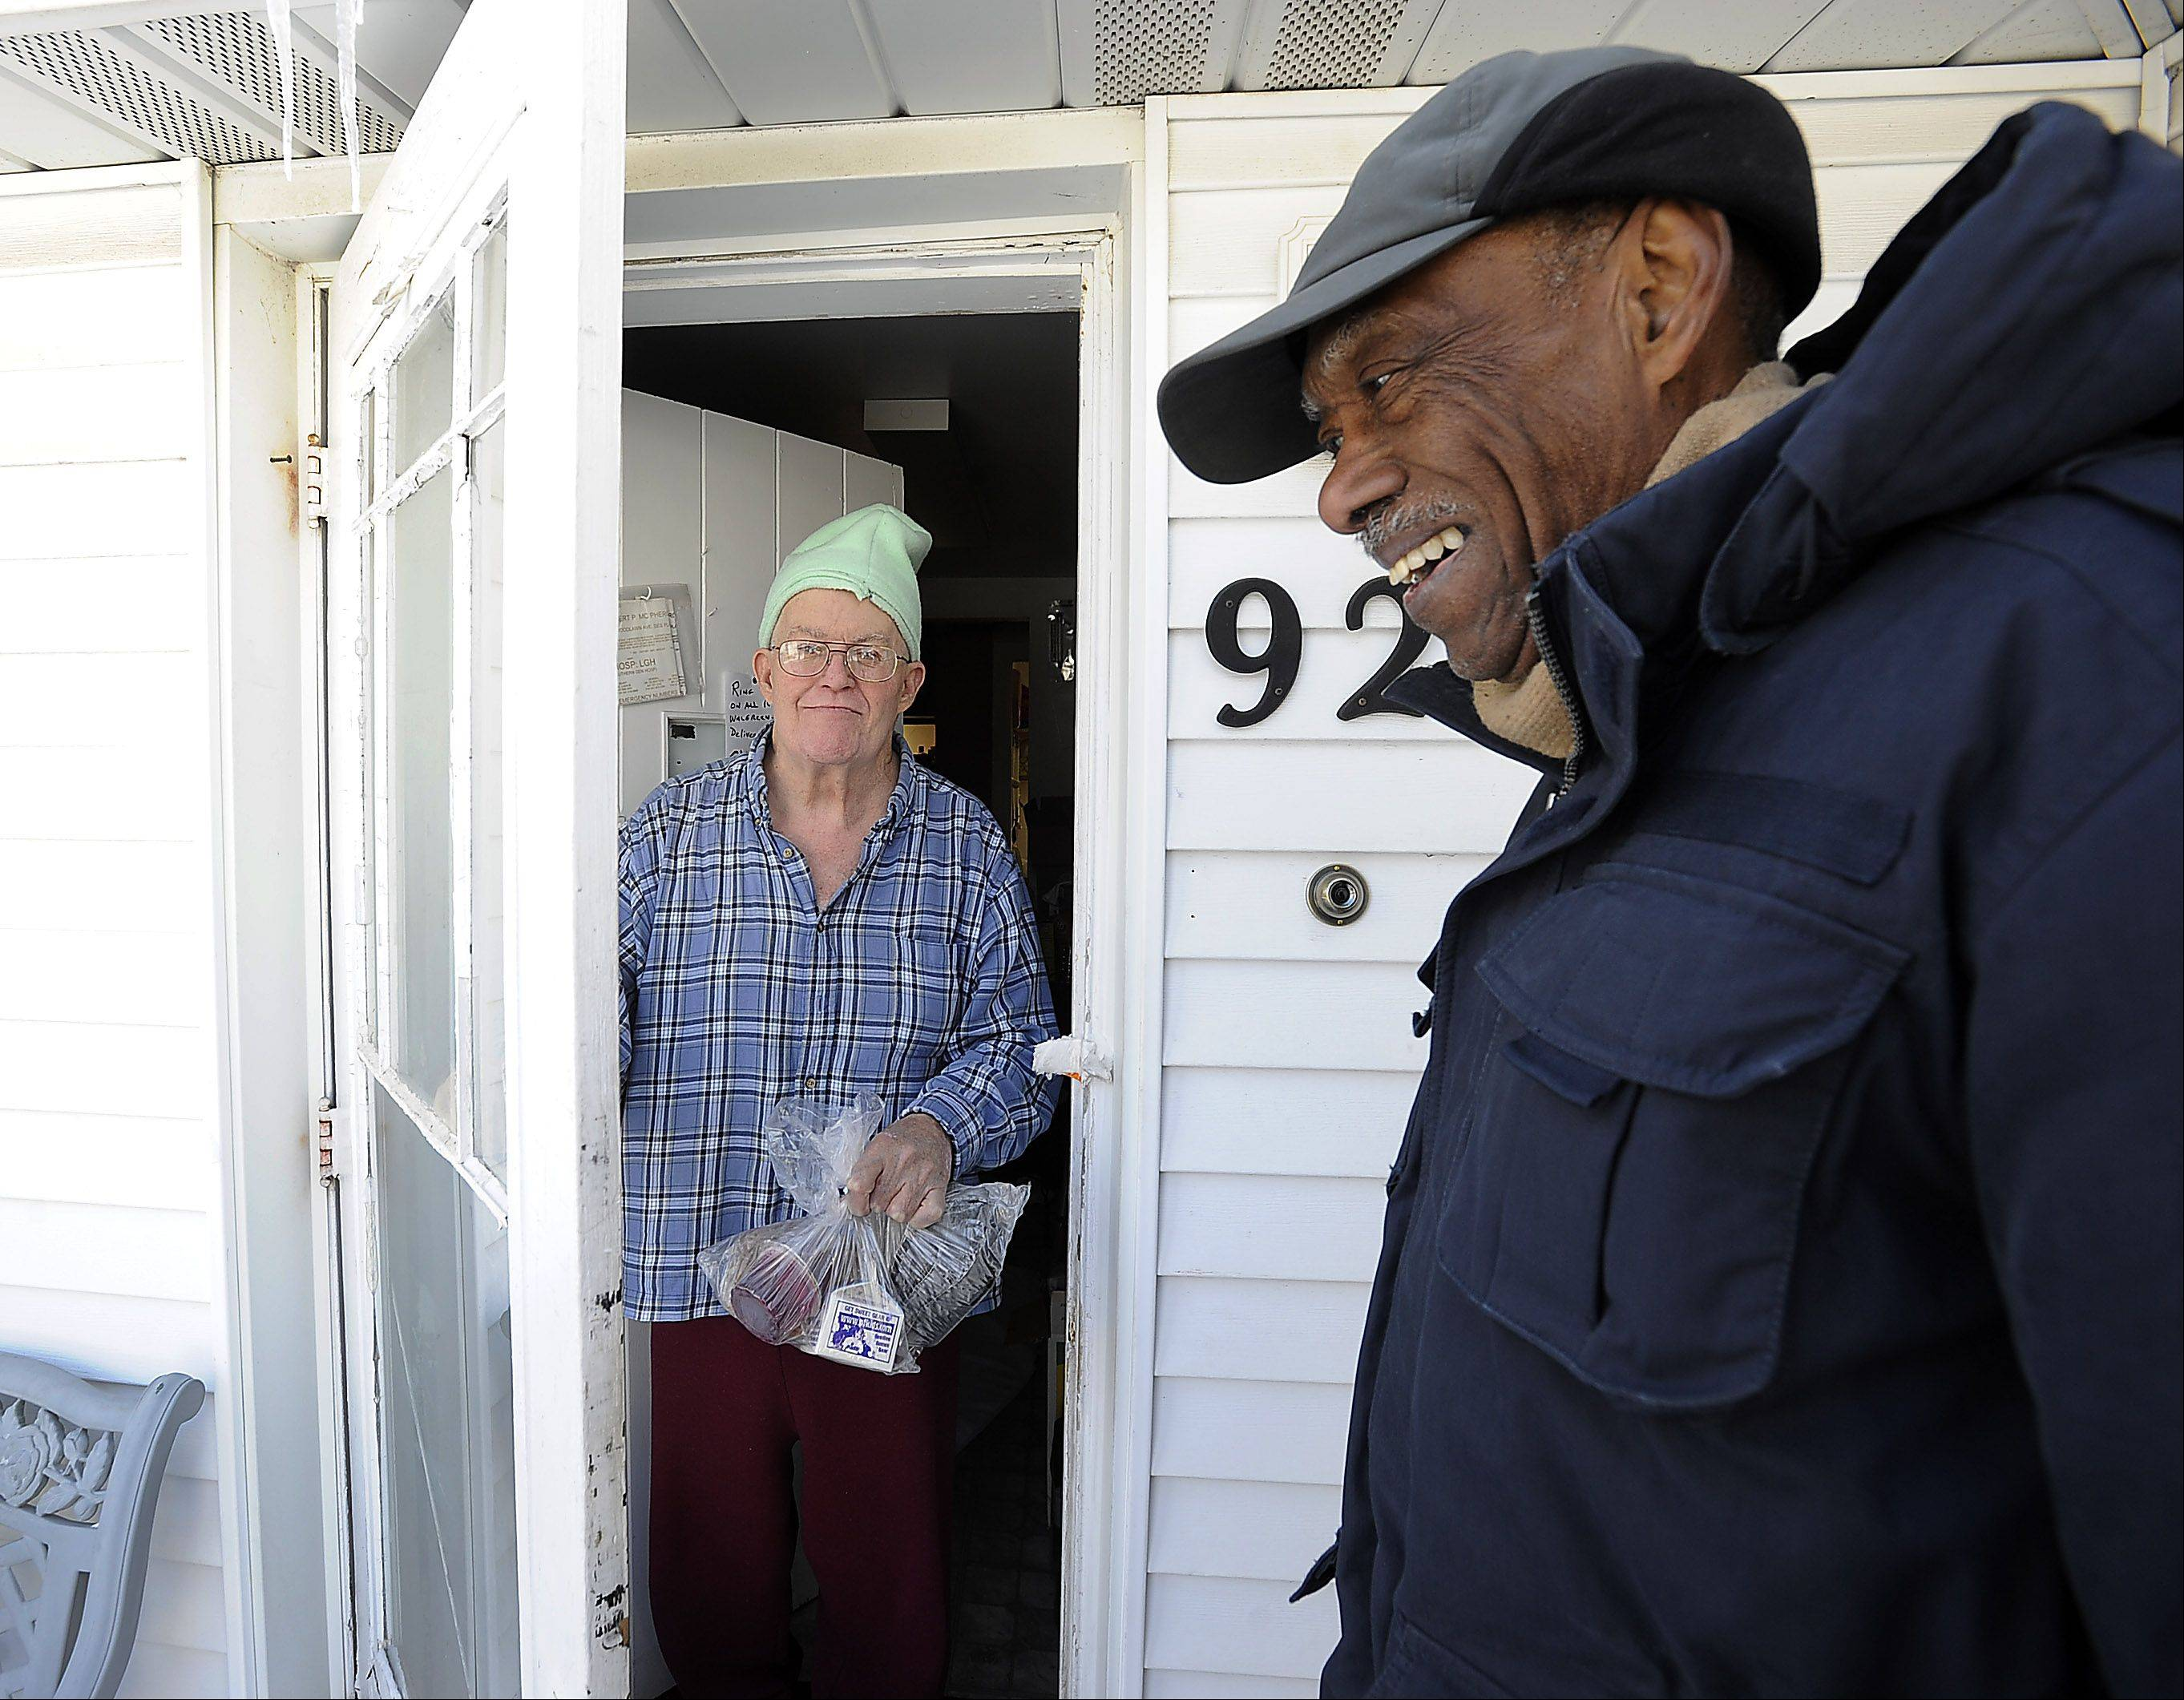 Meals on Wheels volunteer Samuel Grimes, 88, shares a laugh with Robert McPheron, 71, of Des Plaines, after delivering his lunch during Monday's brutal cold.